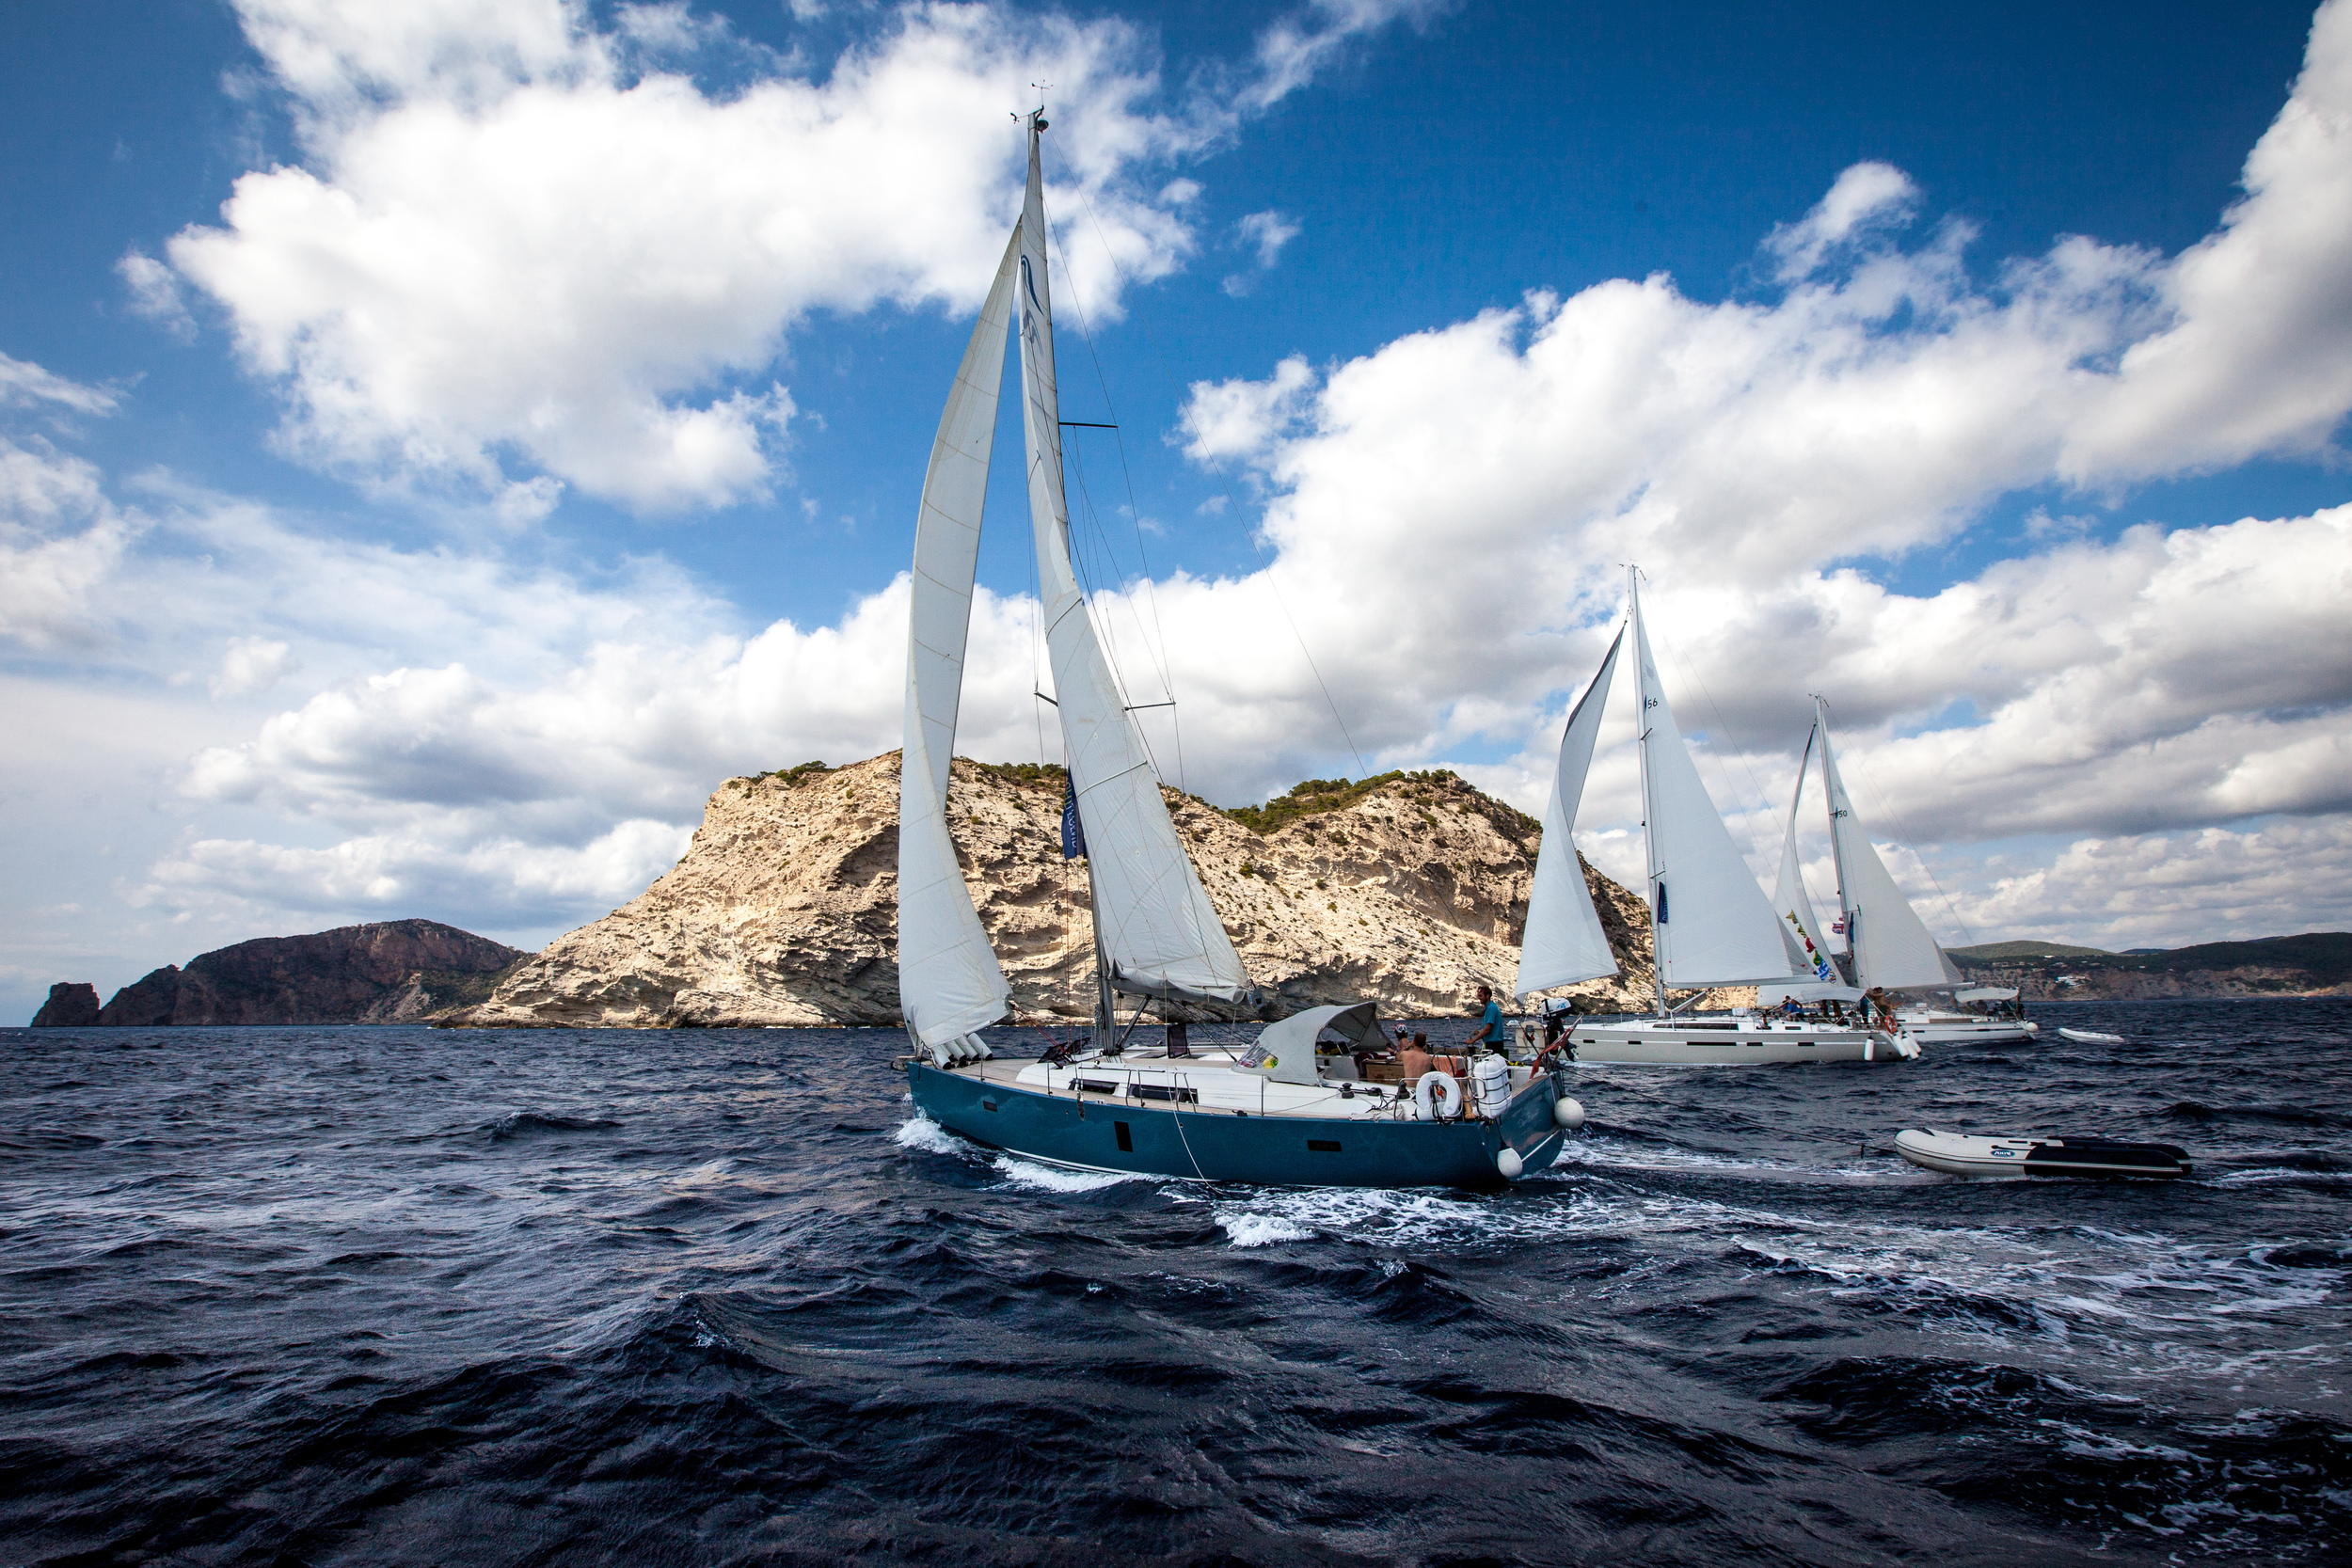 YL 2013 Regatta, Balearic Sea